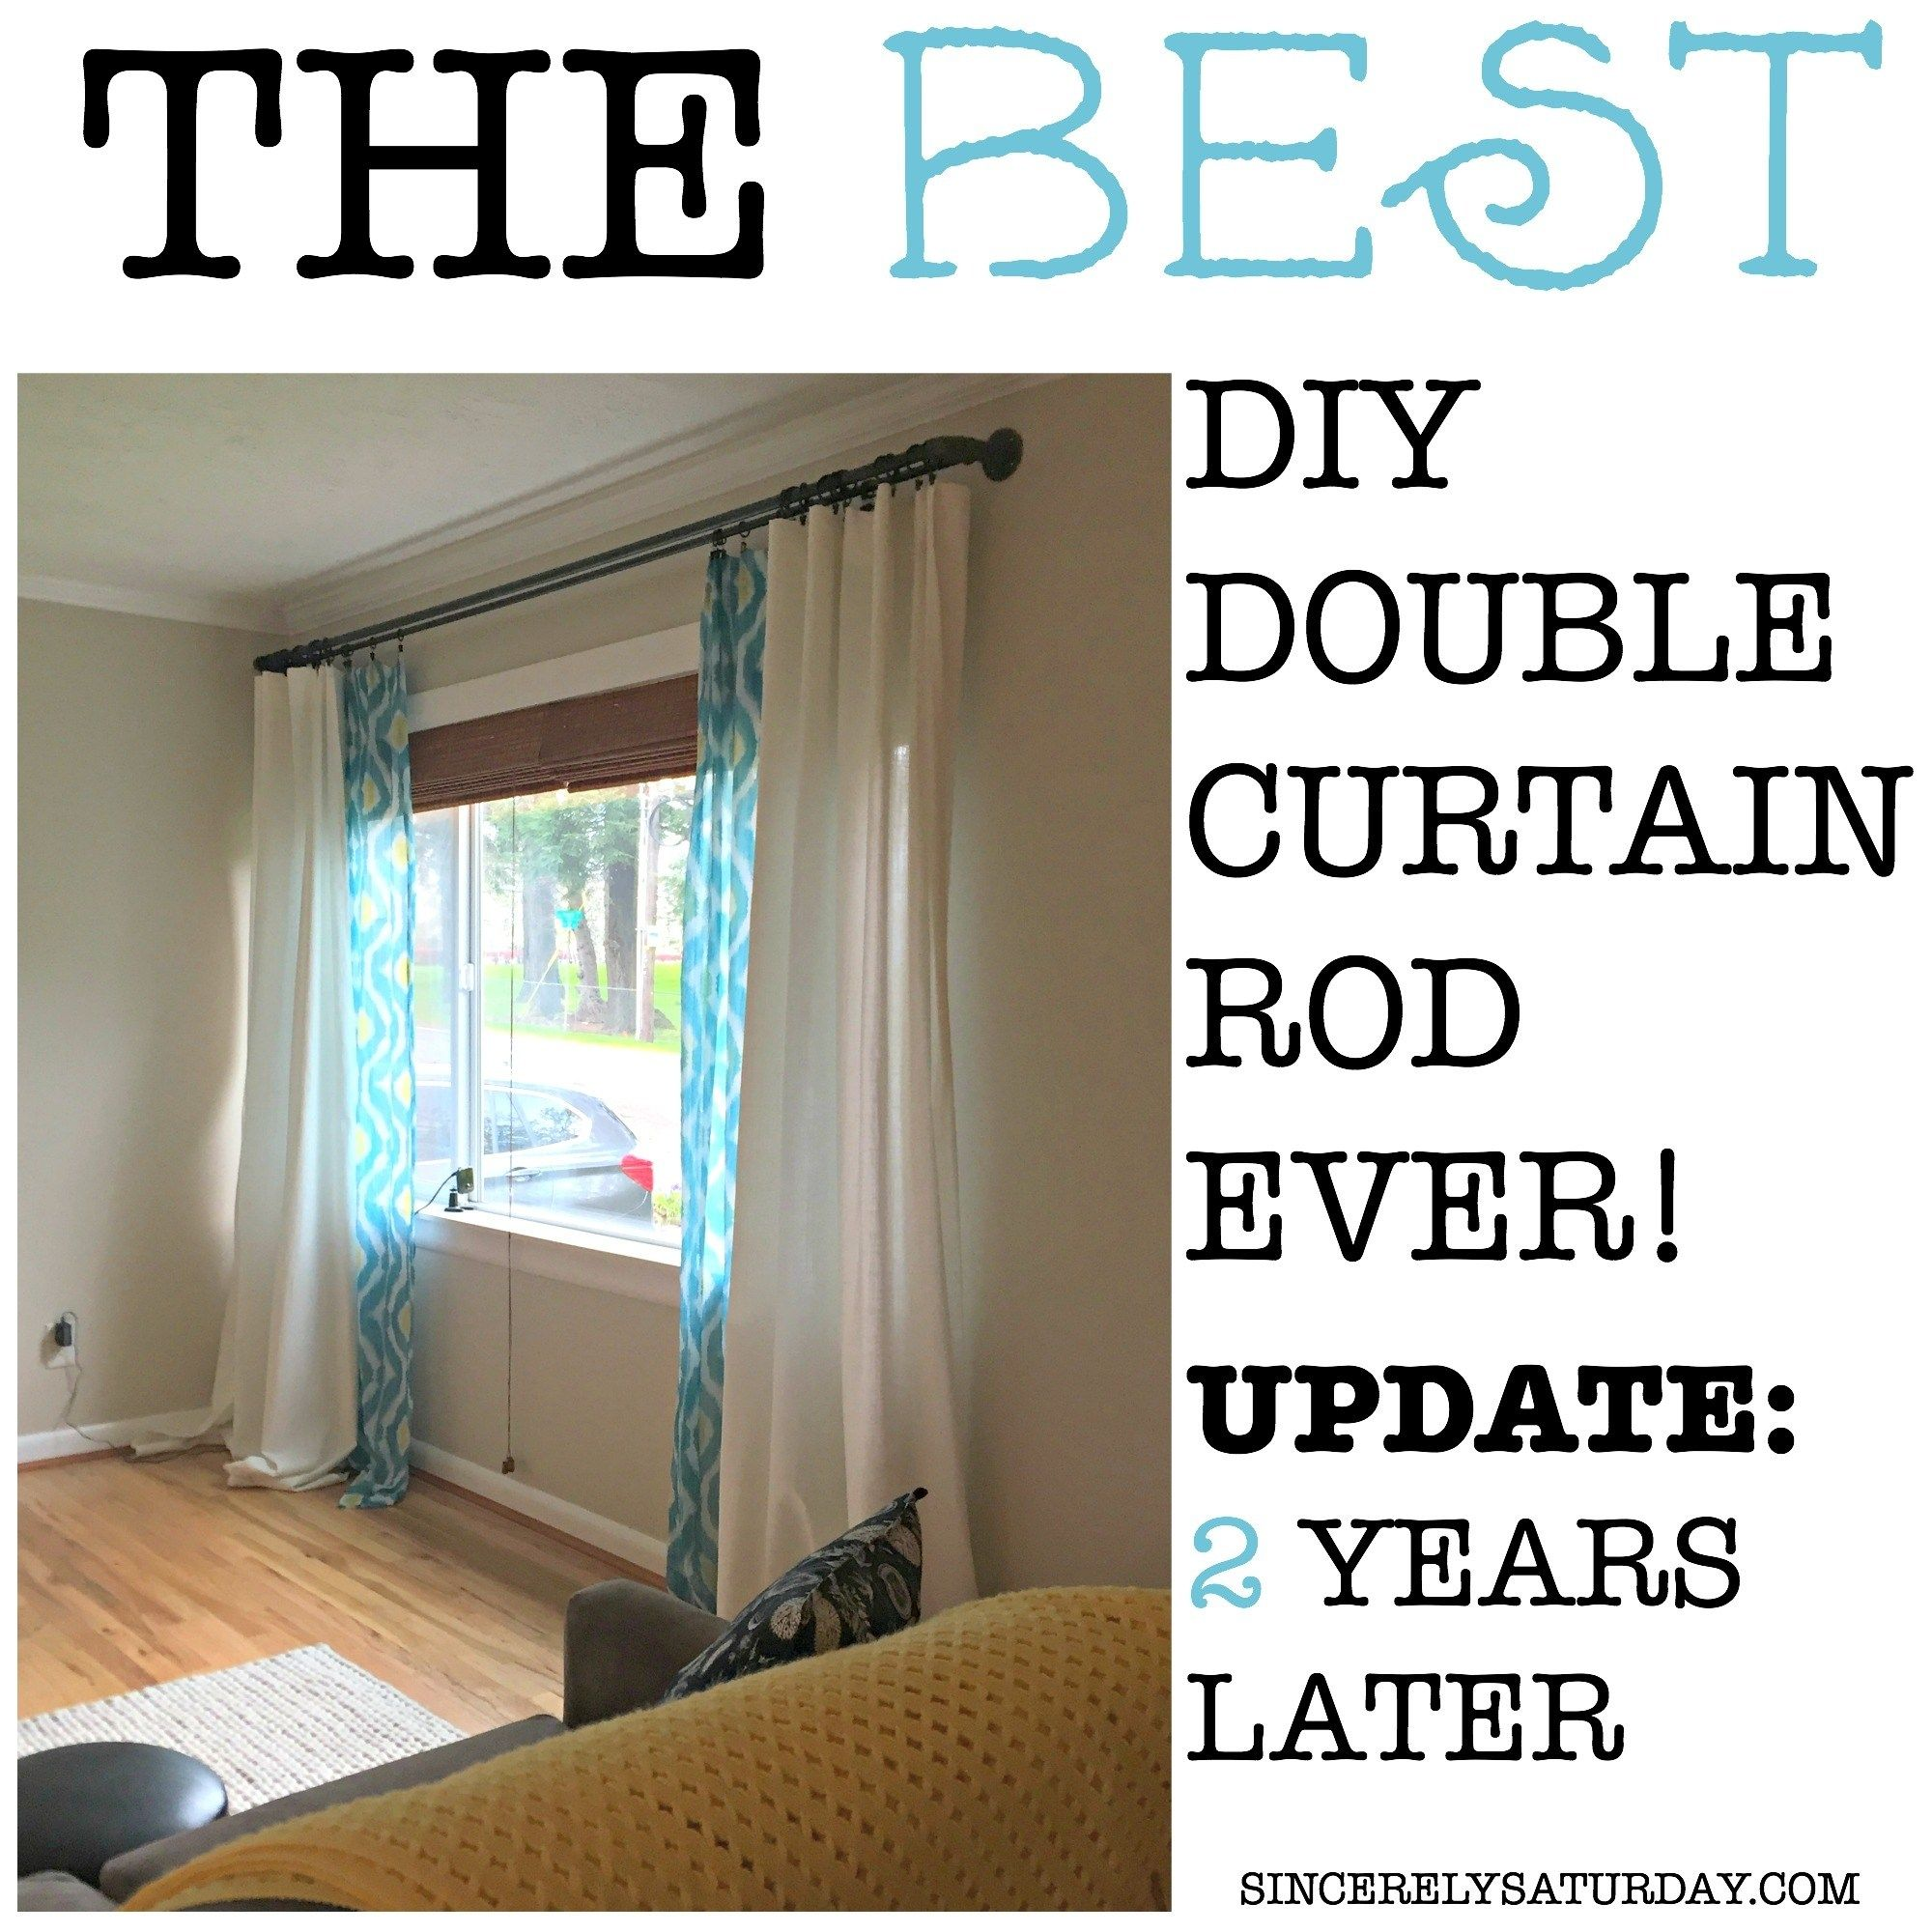 Best Diy Double Curtain Rod Ever 2 Years Later Double Rod